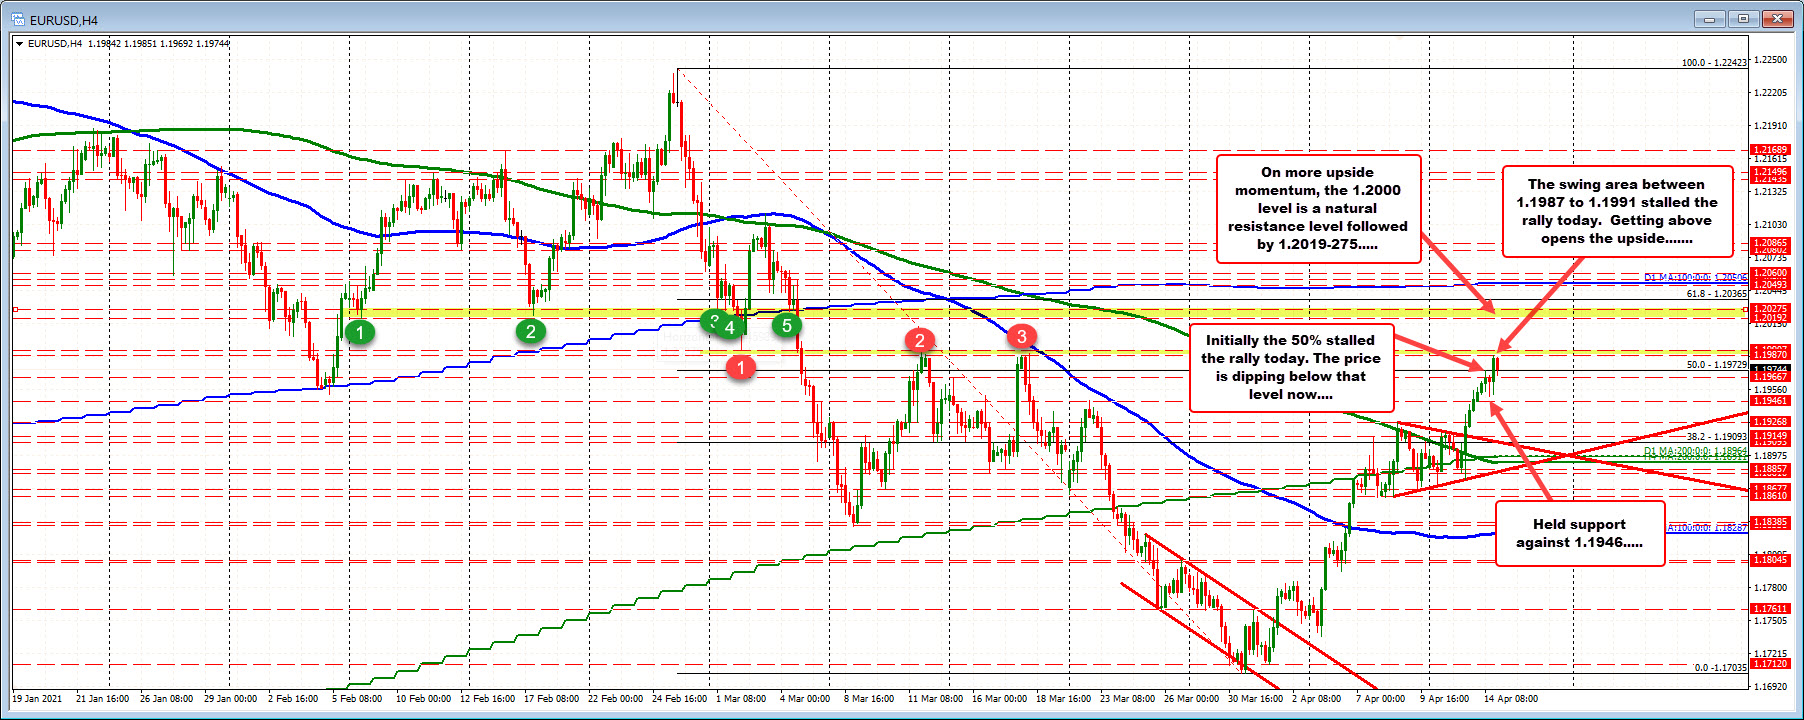 EURUSD finds some sellers at the key swing area. Corrects into the close